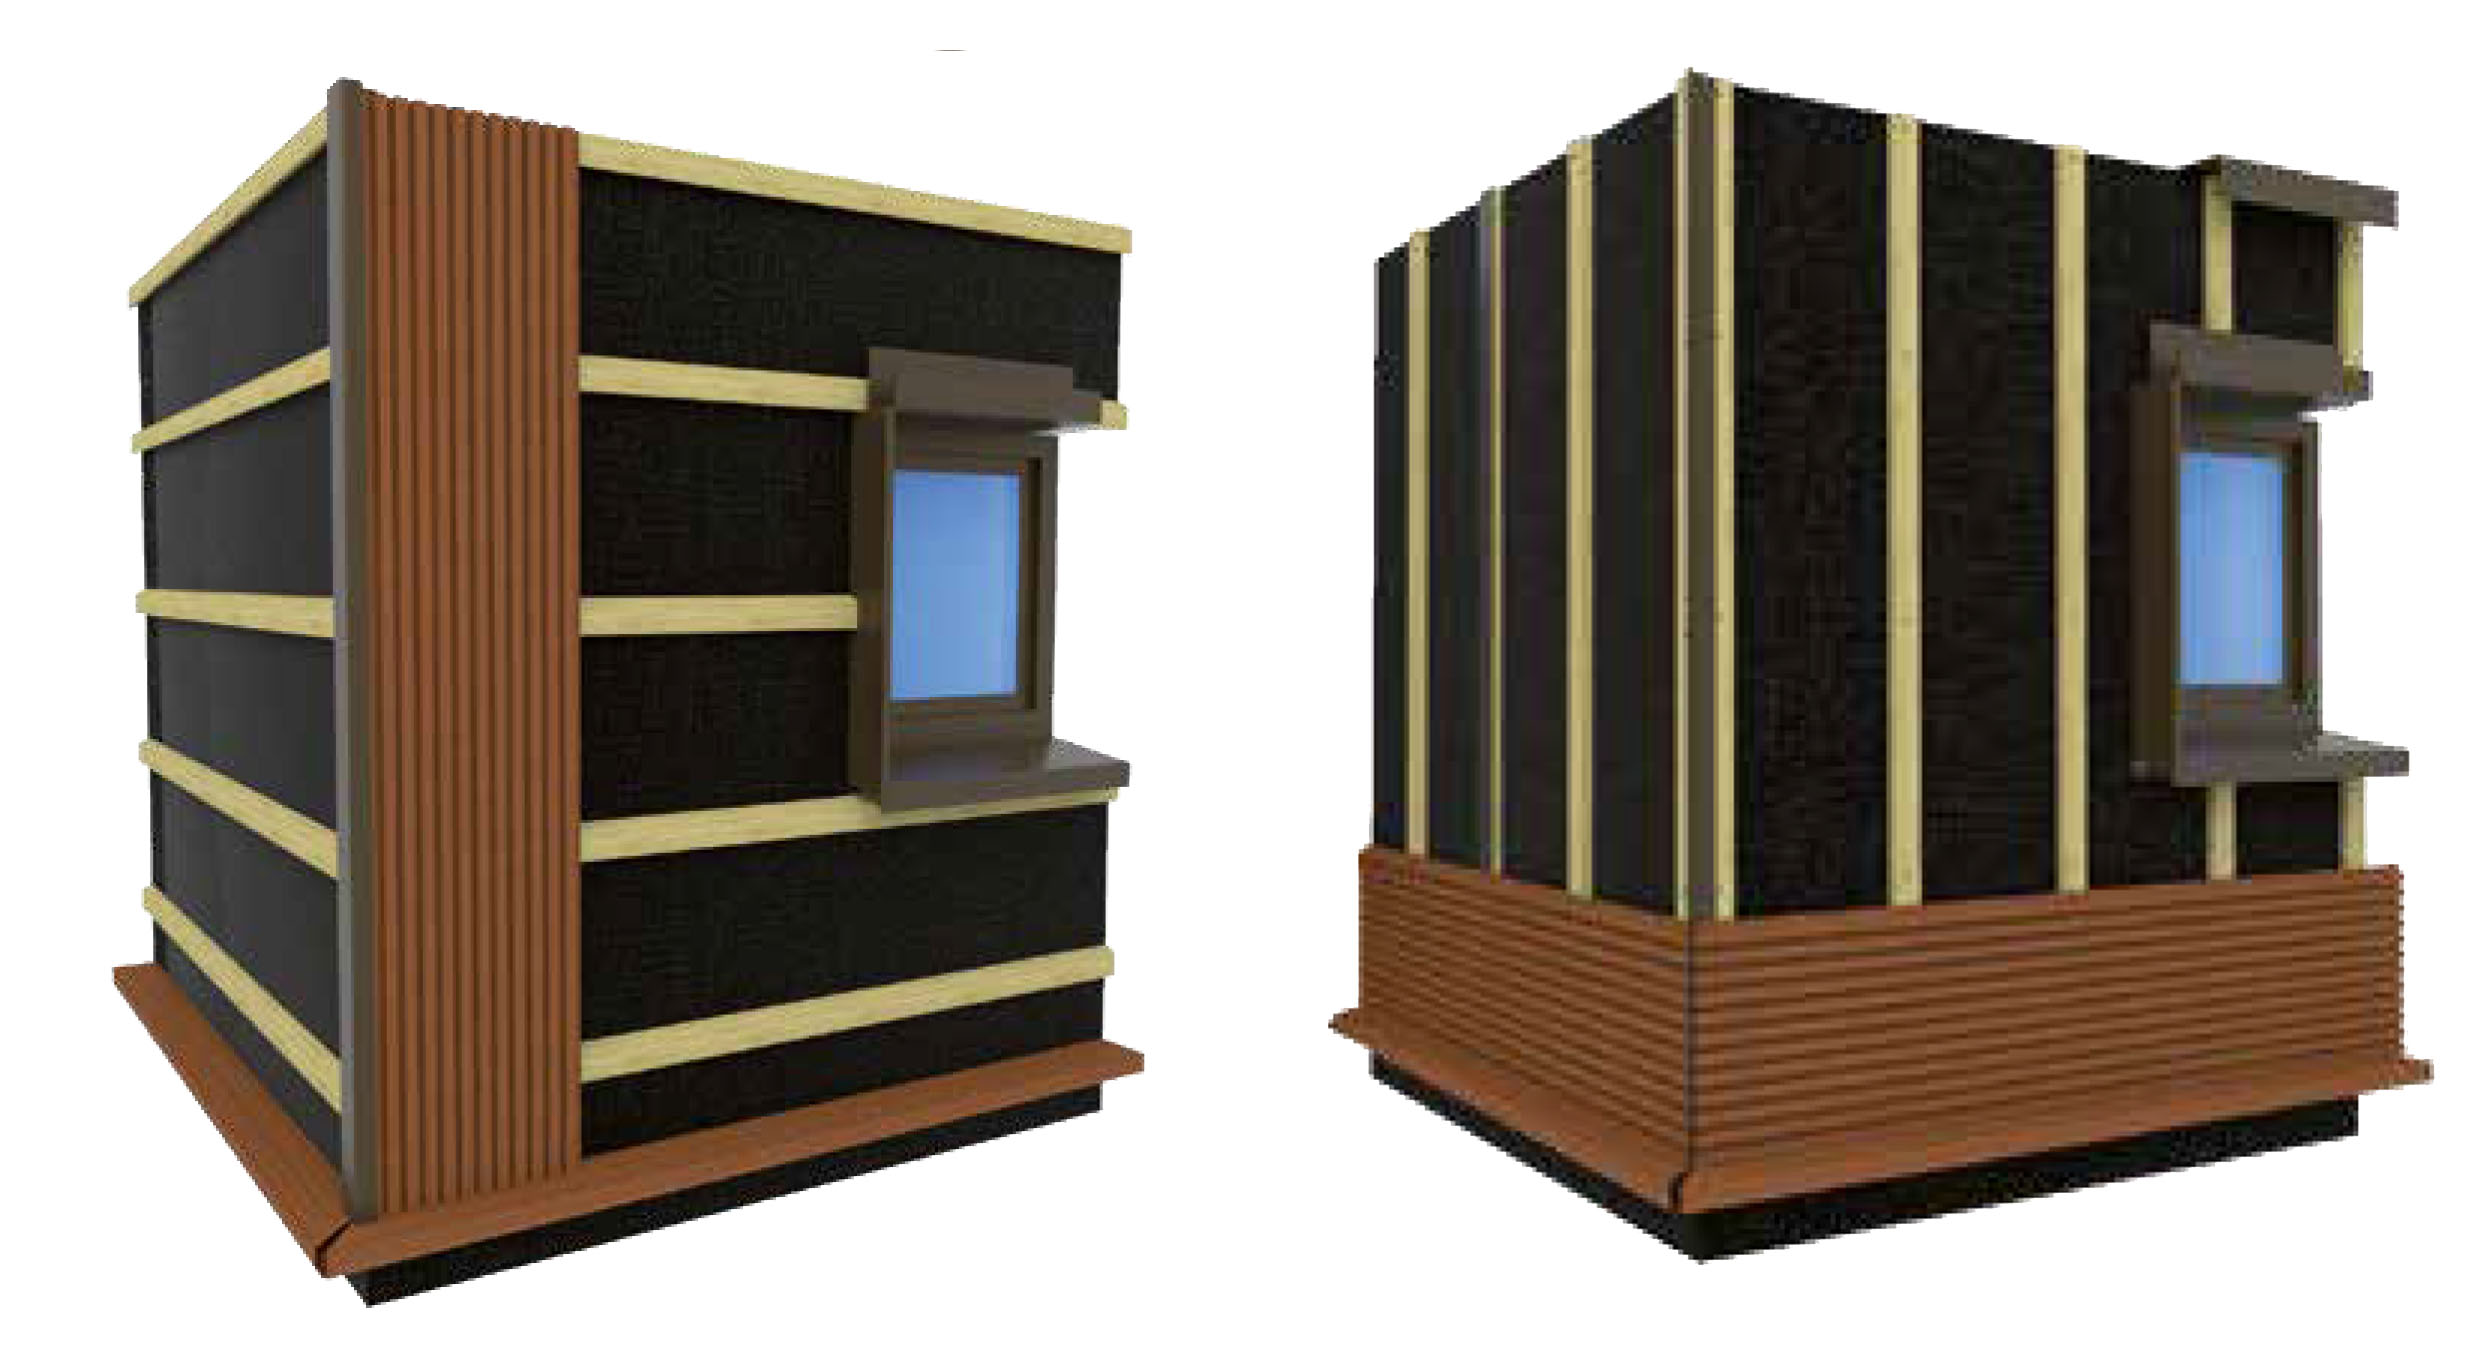 bardage weo de fiberdeck bardage bois faux claire voie composite co extrud garanti 15 ans. Black Bedroom Furniture Sets. Home Design Ideas